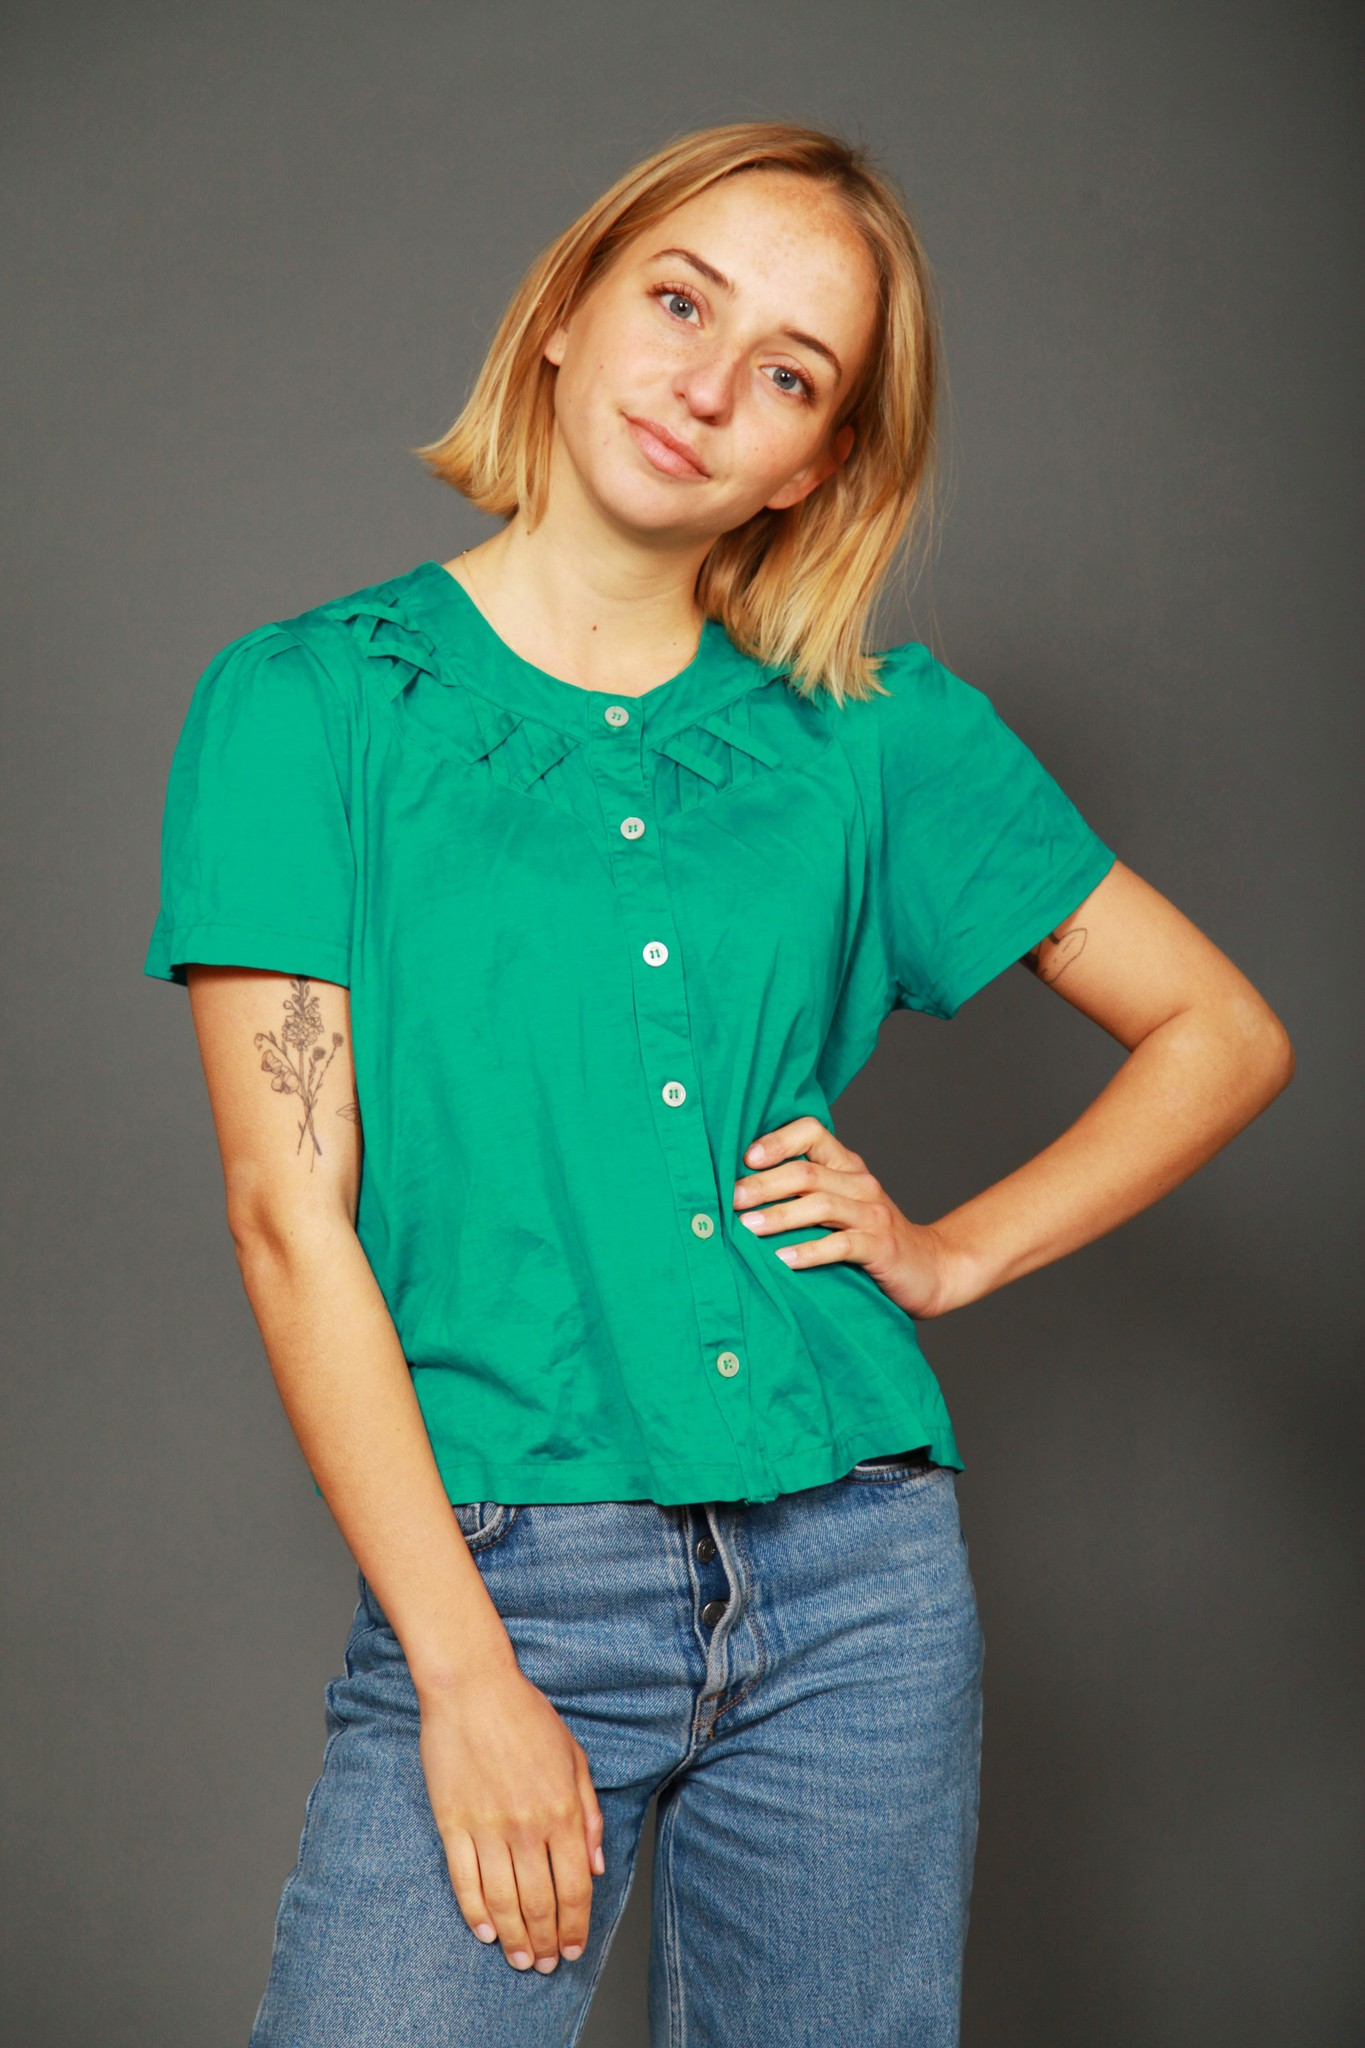 Colorful 80s top